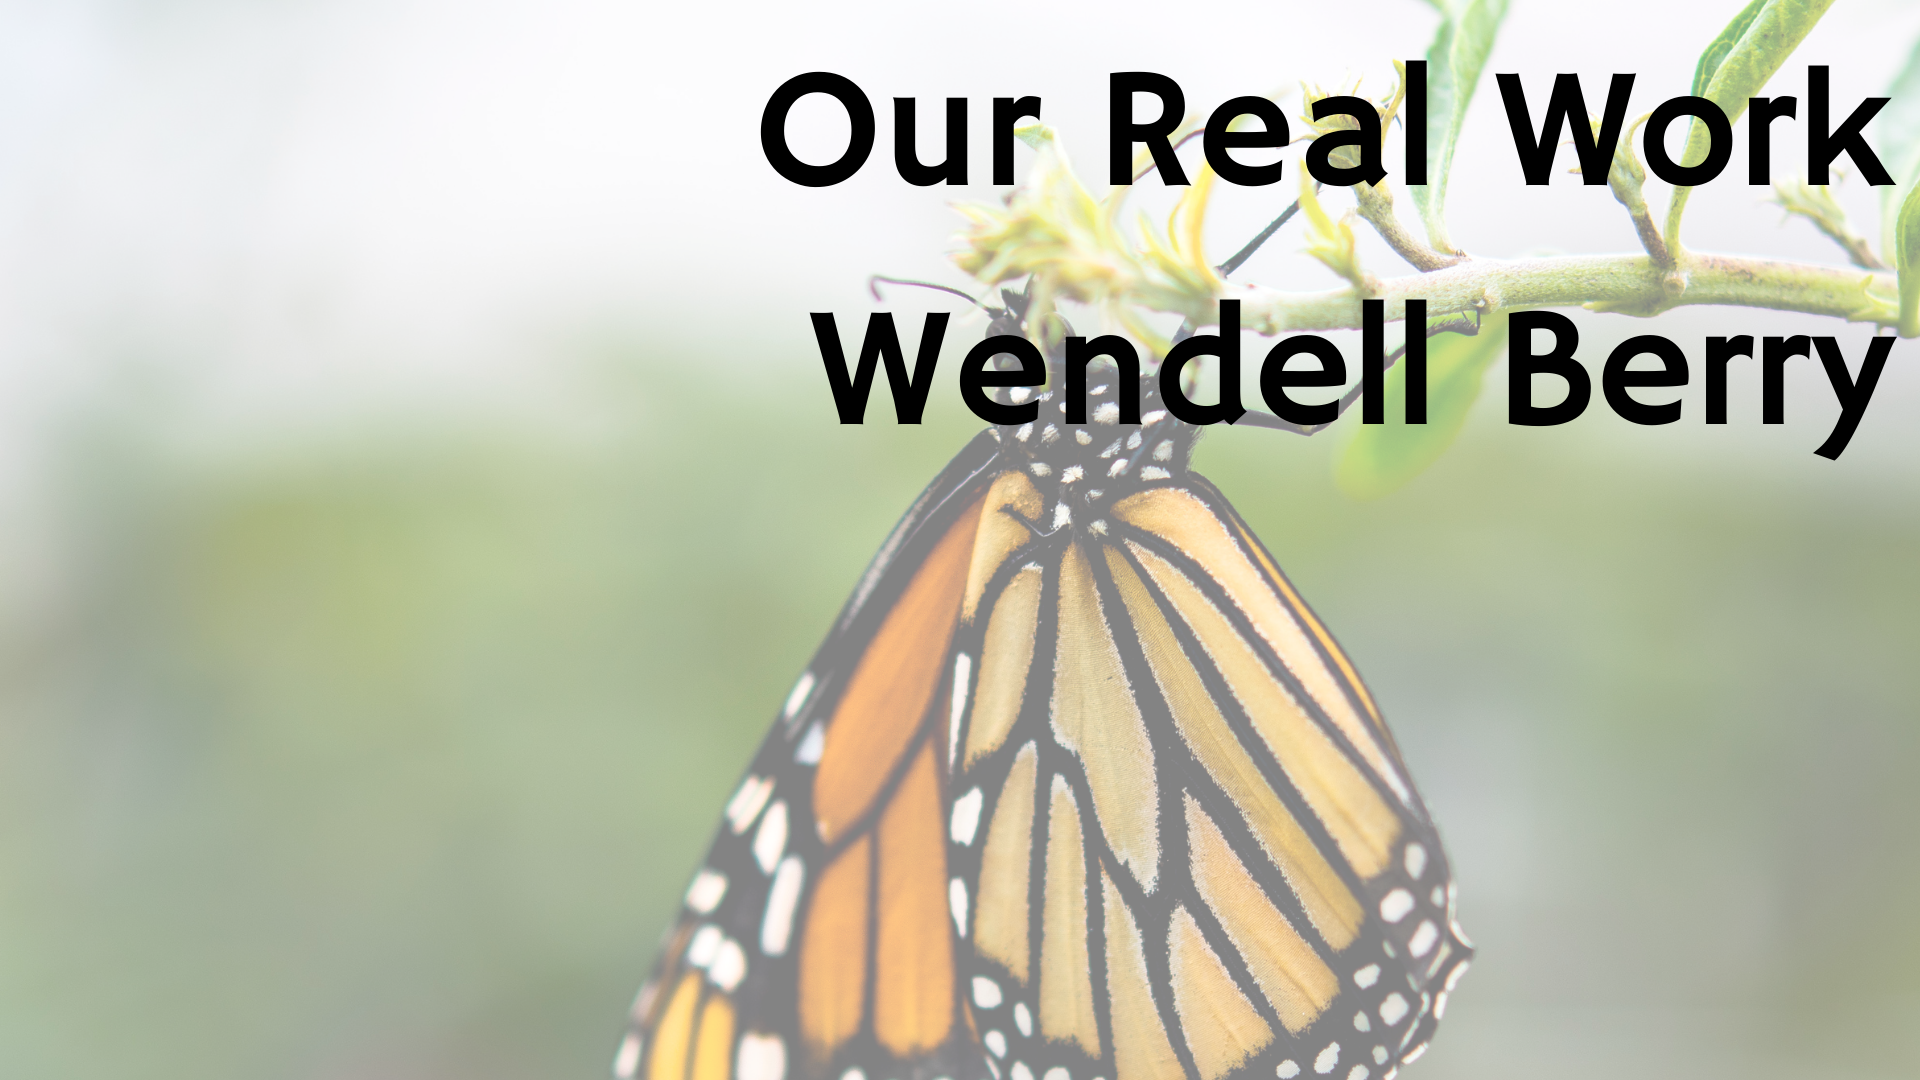 Our Real Work by Wendell Berry